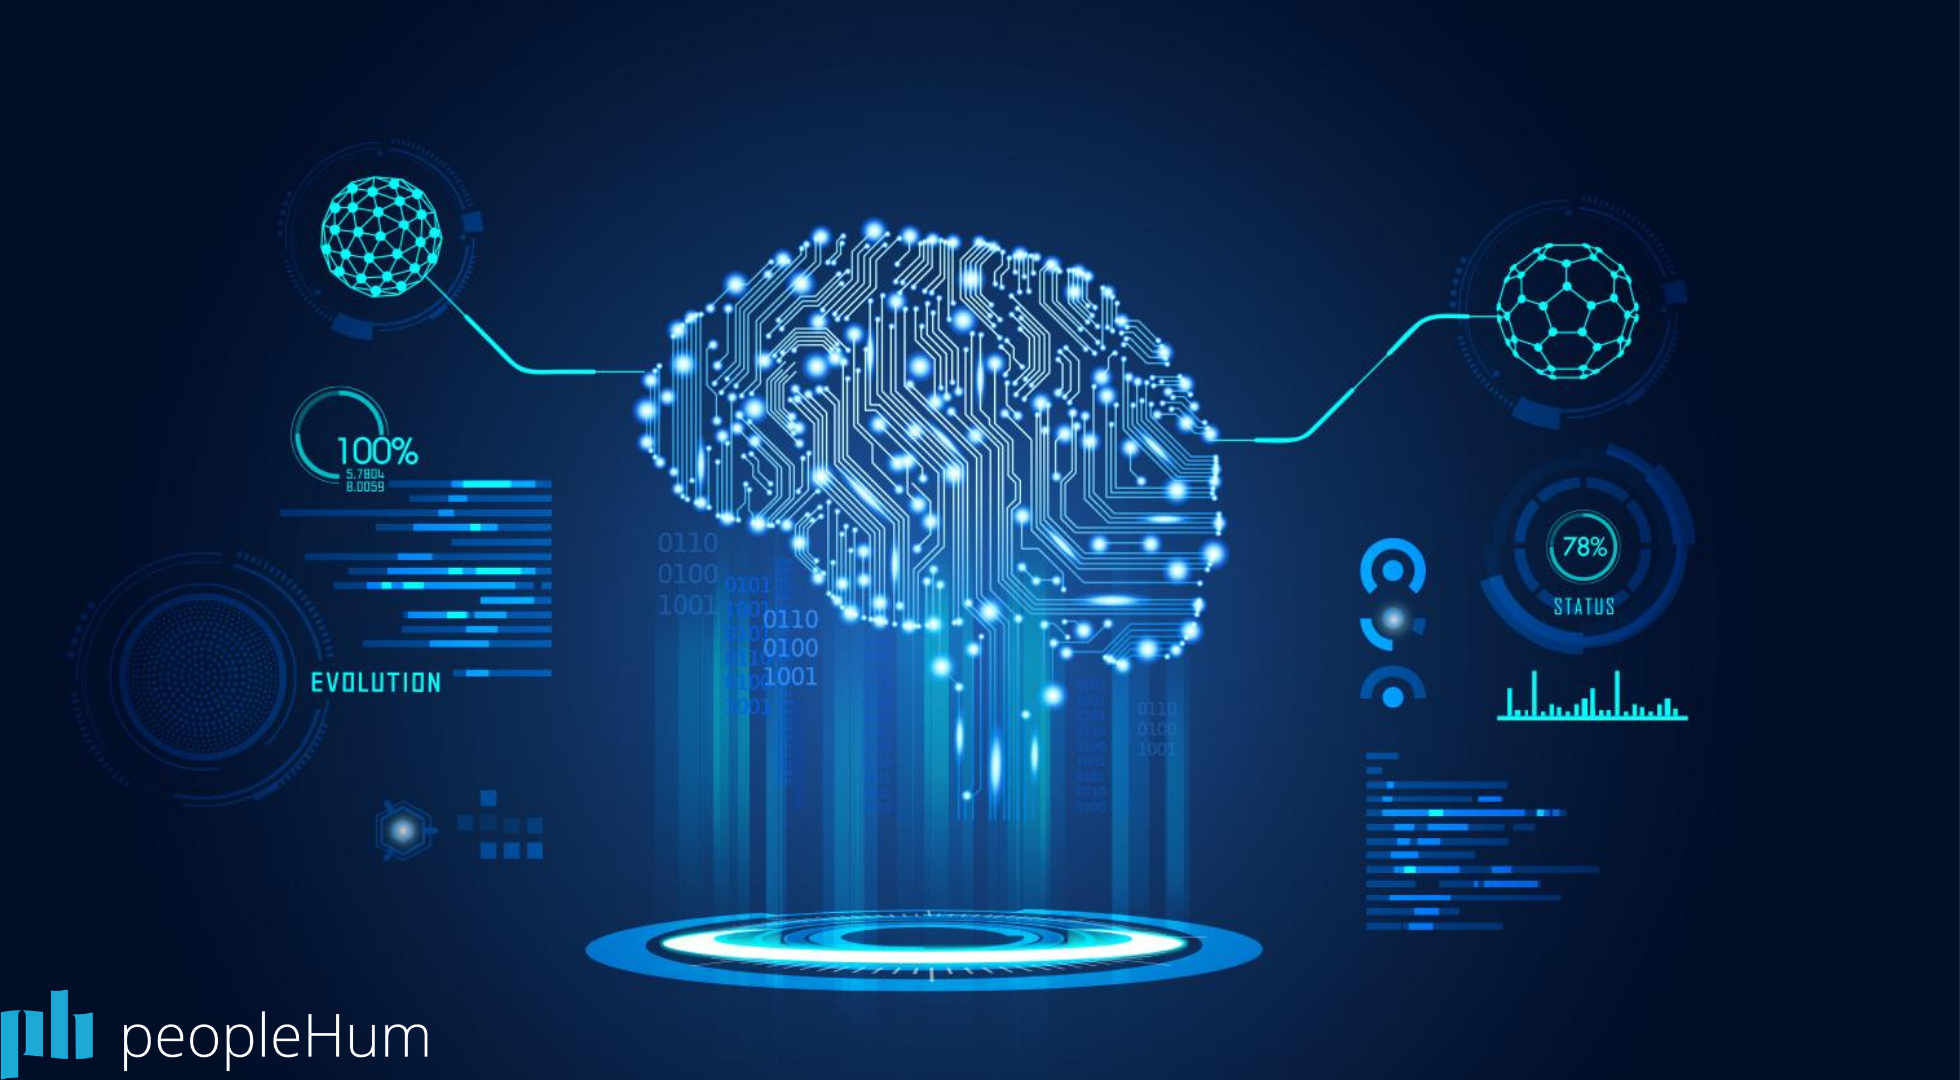 """""""In the future, more complex jobs will be done by AI so we need to prepare ourselves for an AI-driven future.."""" -Mark van Rijmenam, Founder of Datafloq"""